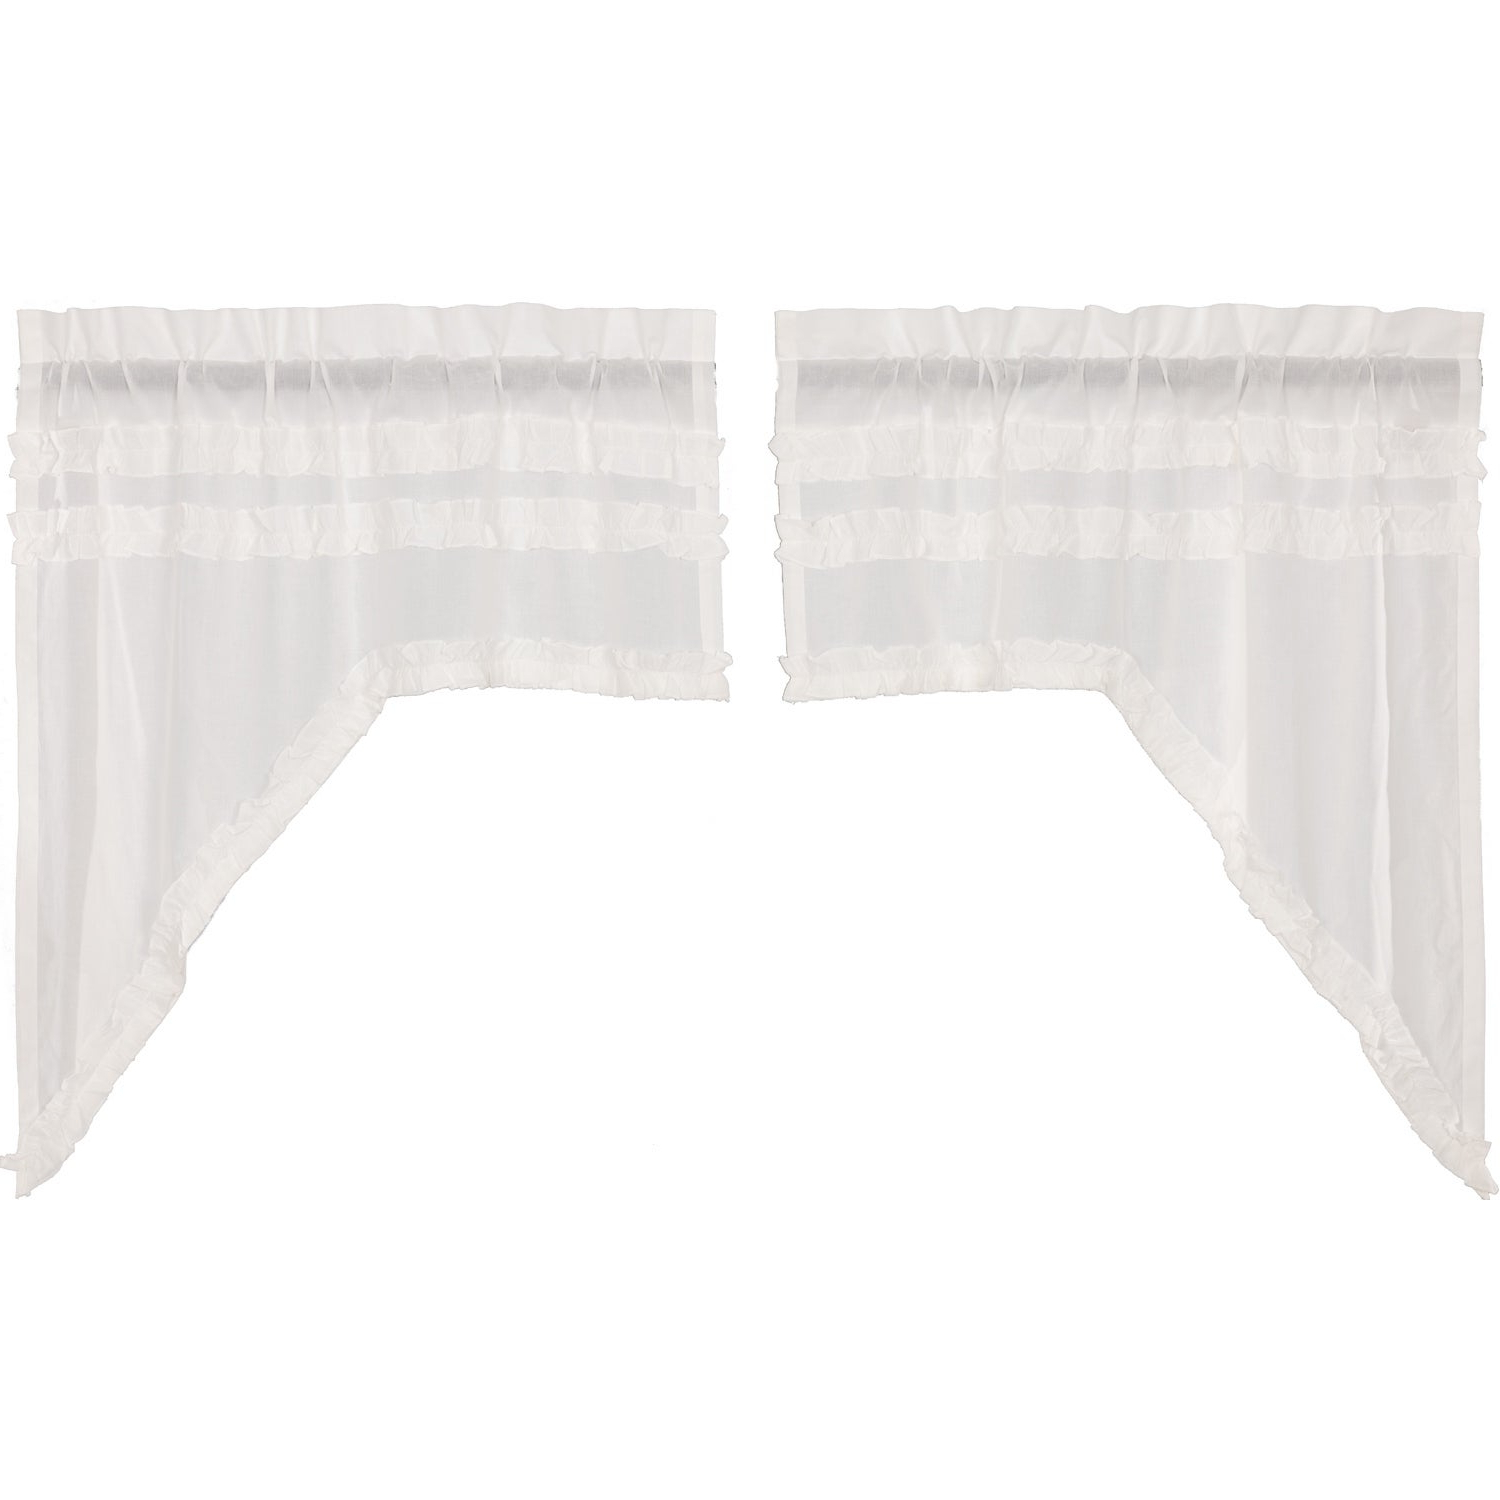 2021 White Ruffled Sheer Petticoat Tier Pairs With White Farmhouse Kitchen Curtains Vhc White Ruffled Sheer Petticoat Swag Pair Rod Pocket Cotton Solid Color Ruched Ruffle (View 3 of 20)